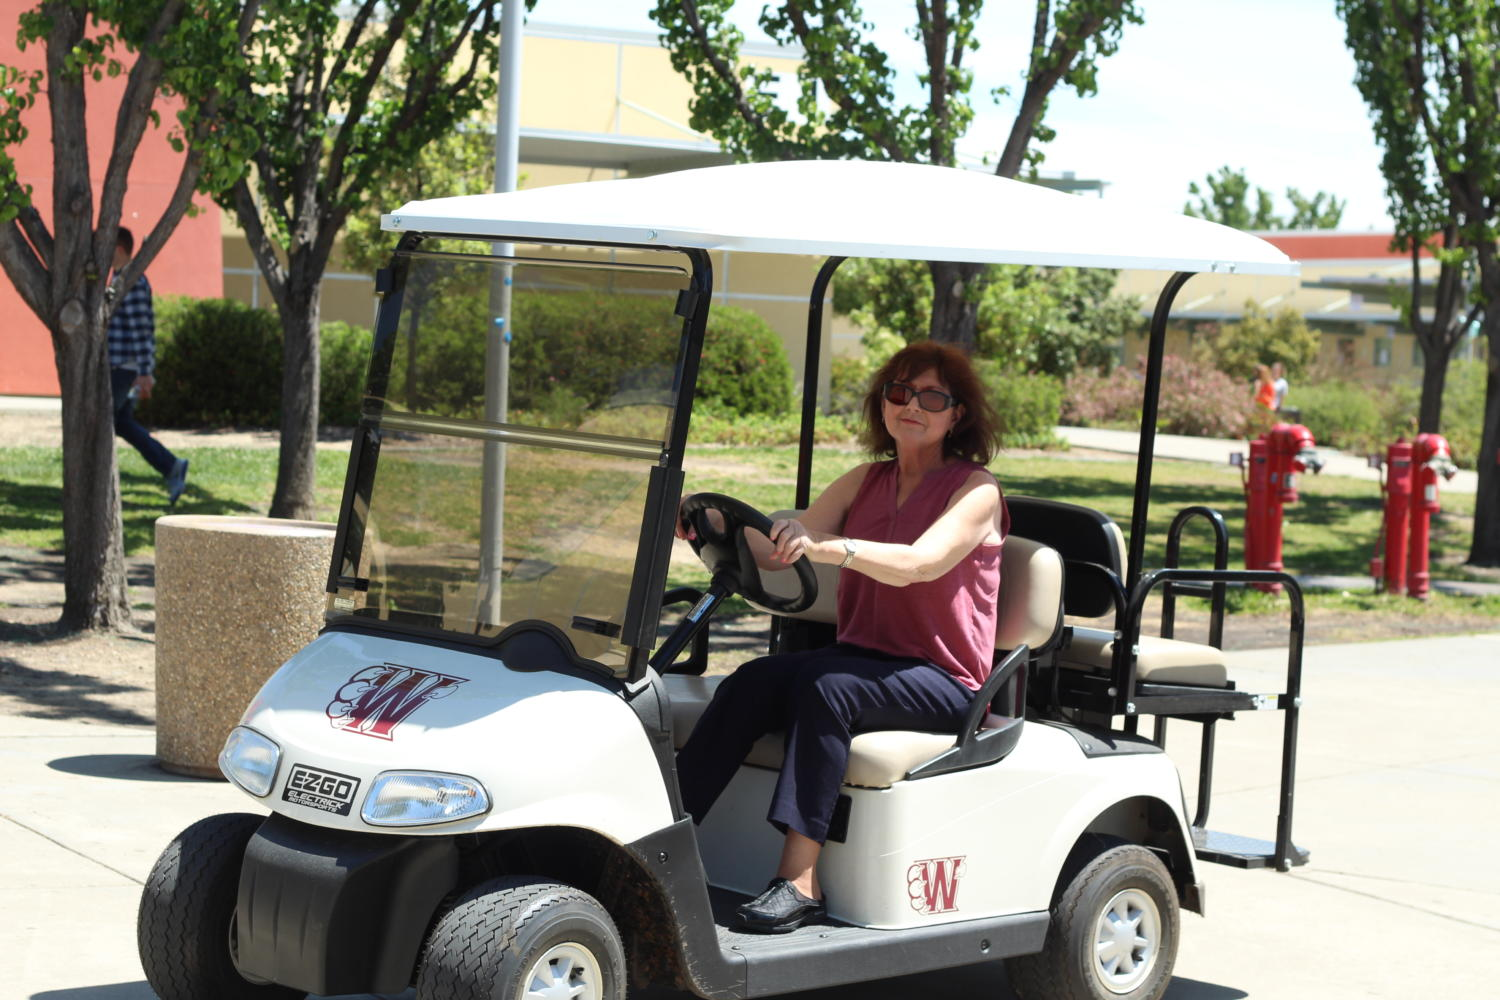 Mrs.+Sherry+Mauser+drives+her+golf+cart+around+campus+at+lunch.+Photo+by+Emma+Kachmar